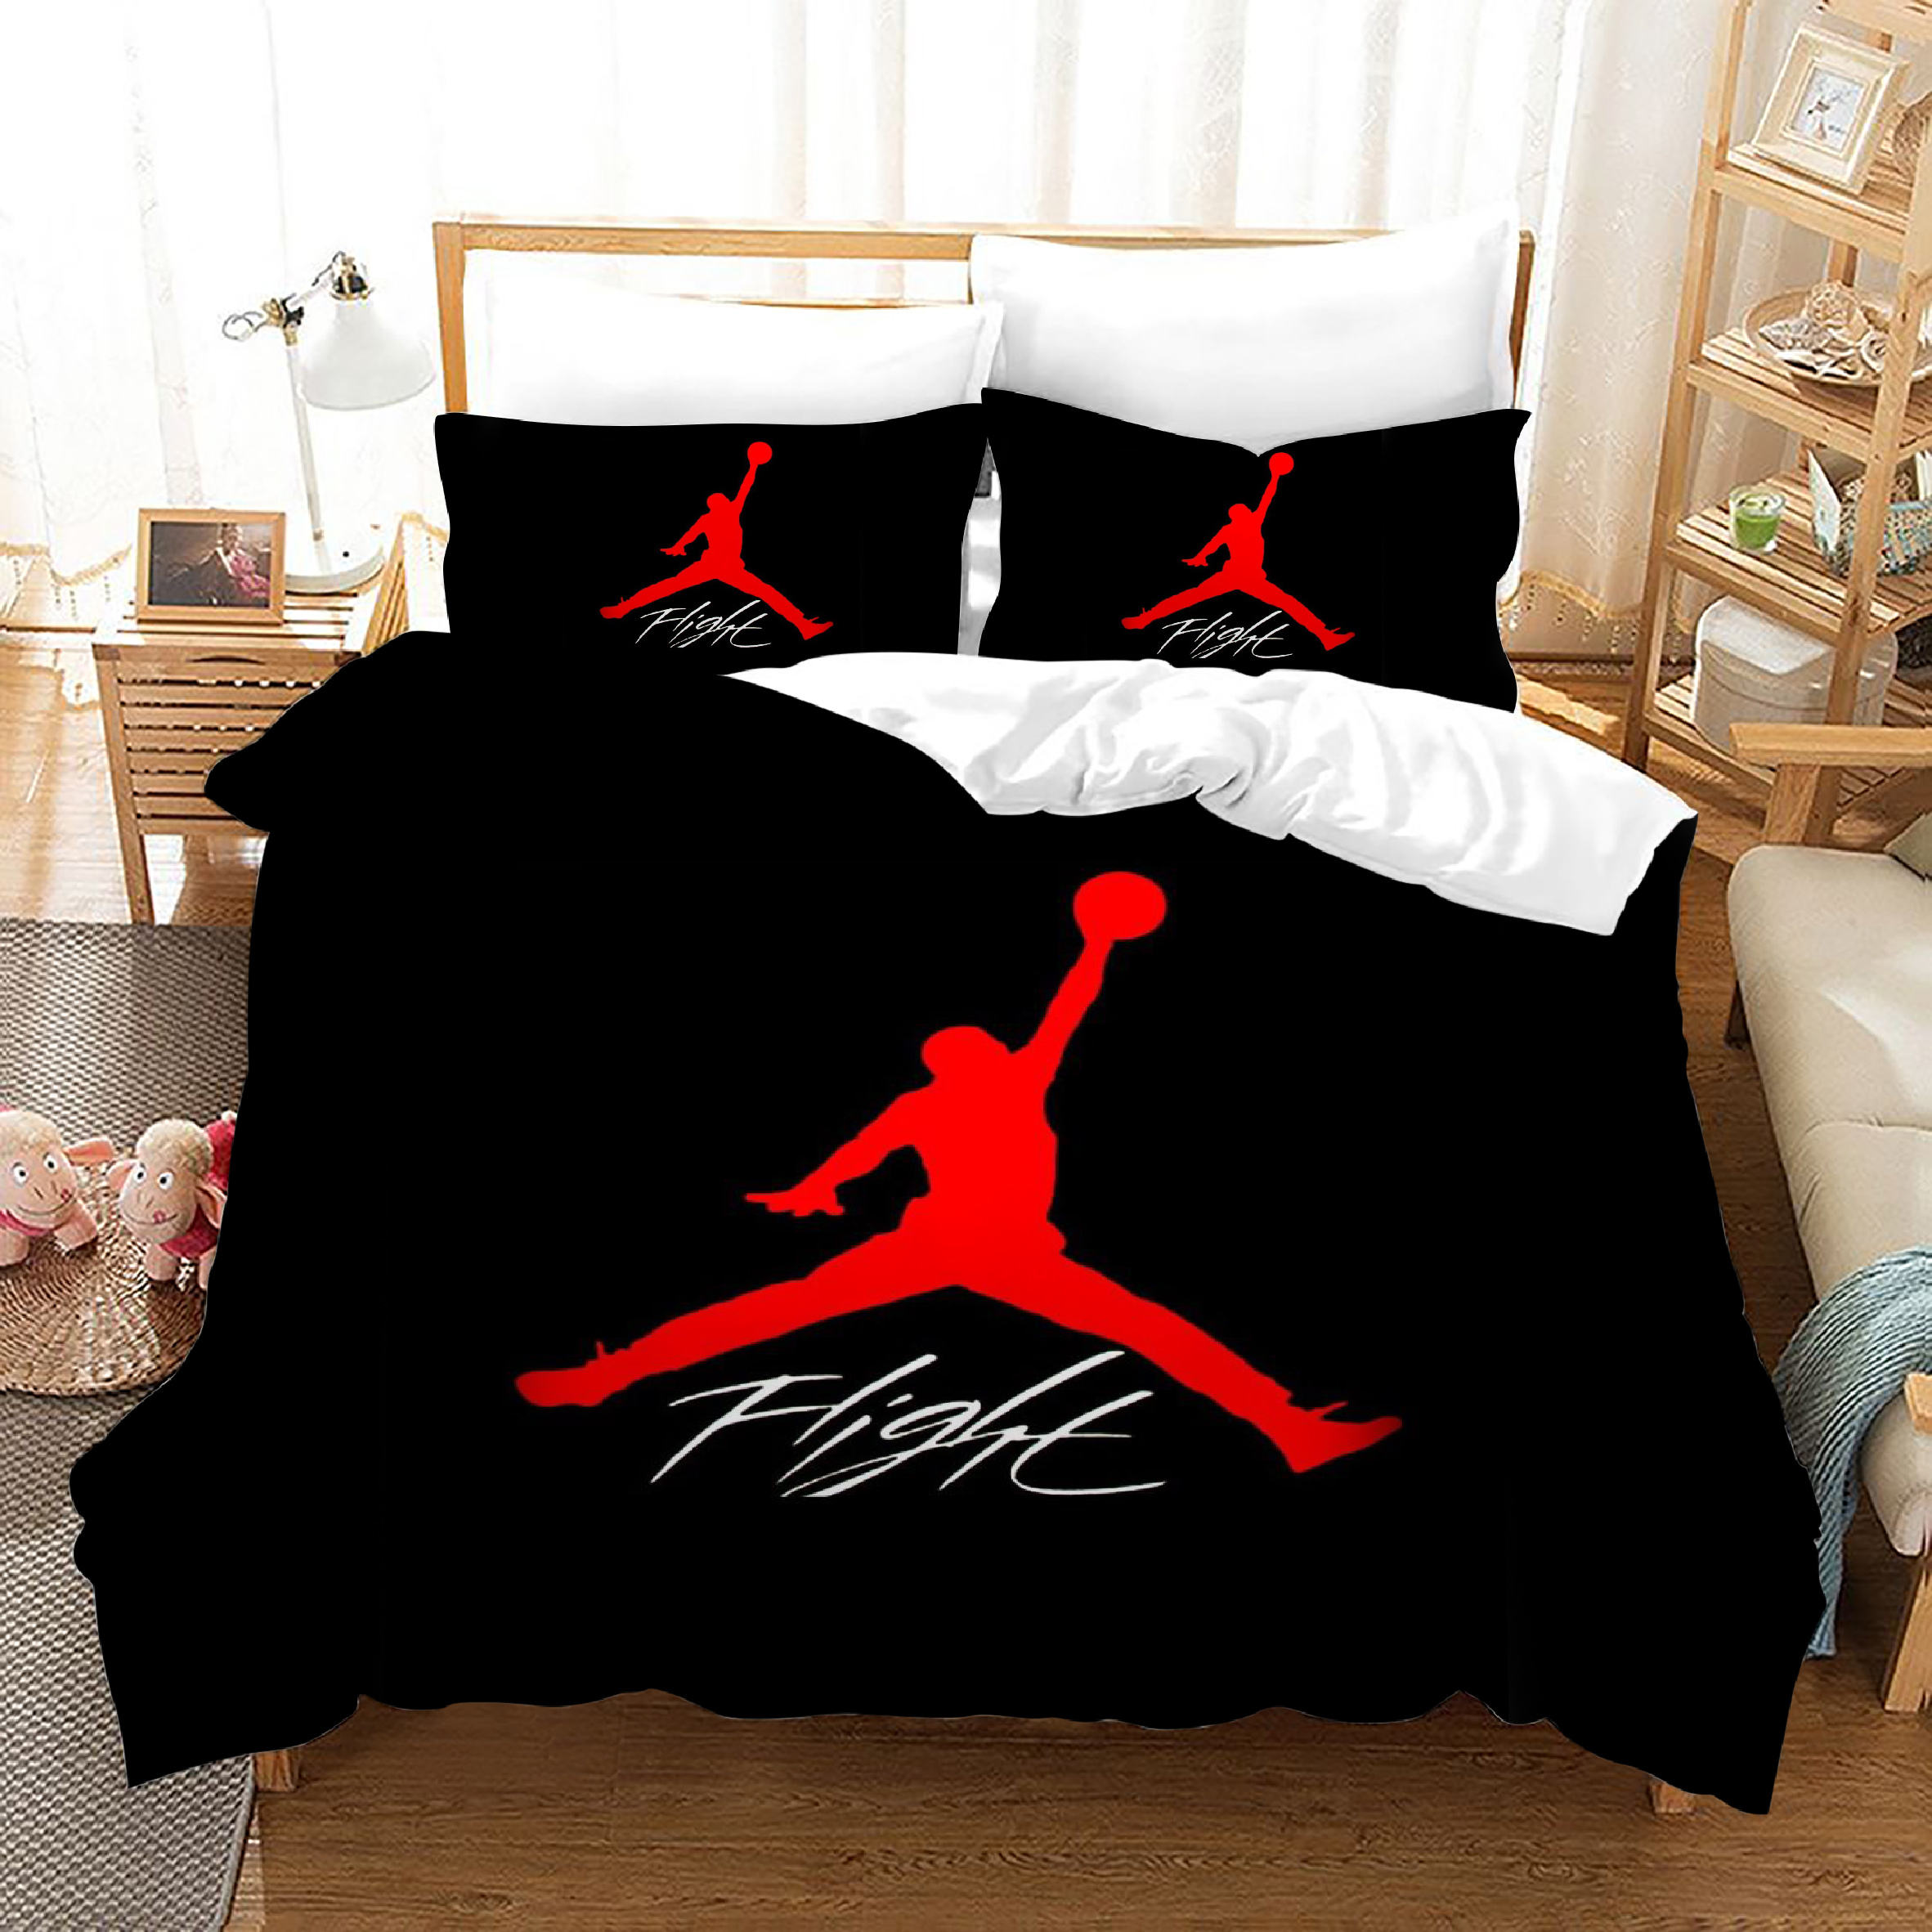 Best selling sheets bed set bedding NBA 1 queen size duvet cover chinese factory bed sheet set king size